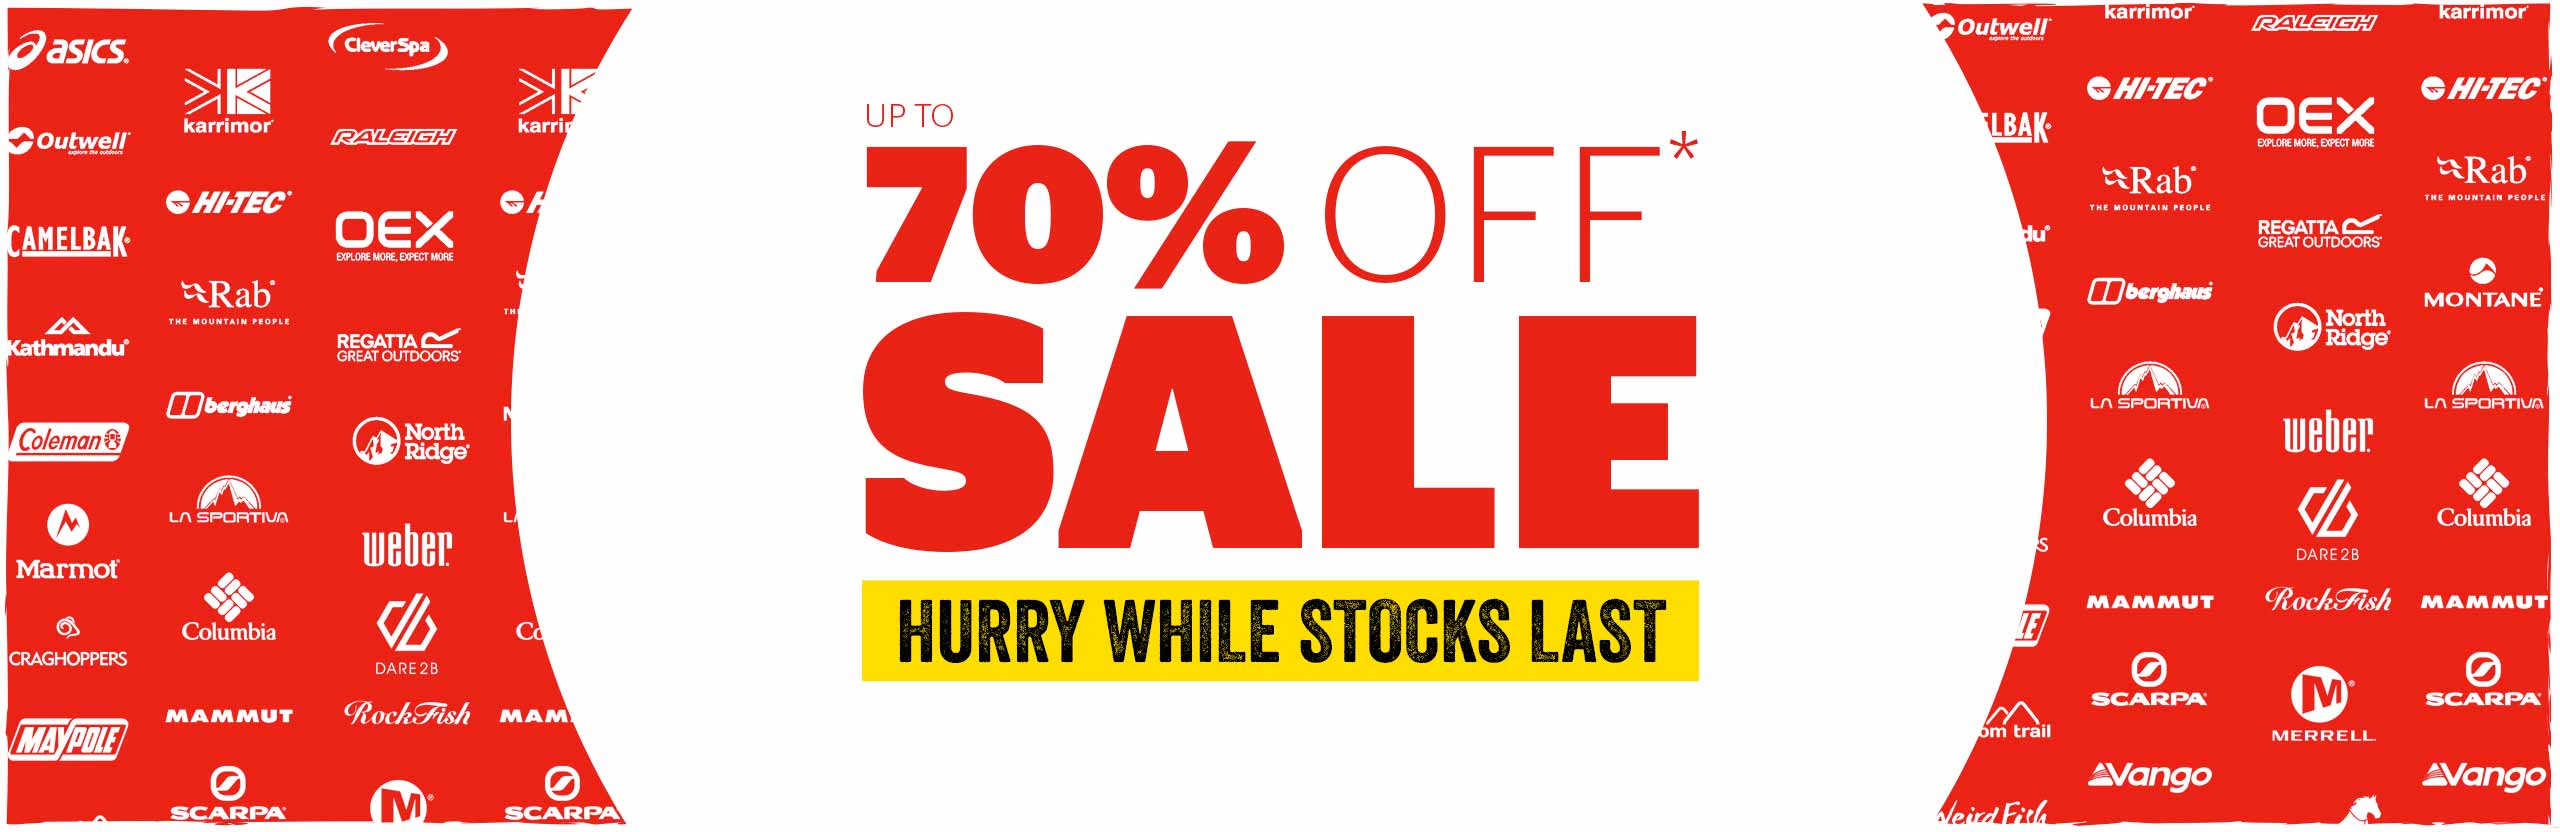 Shop Sale - Up to 70% Off